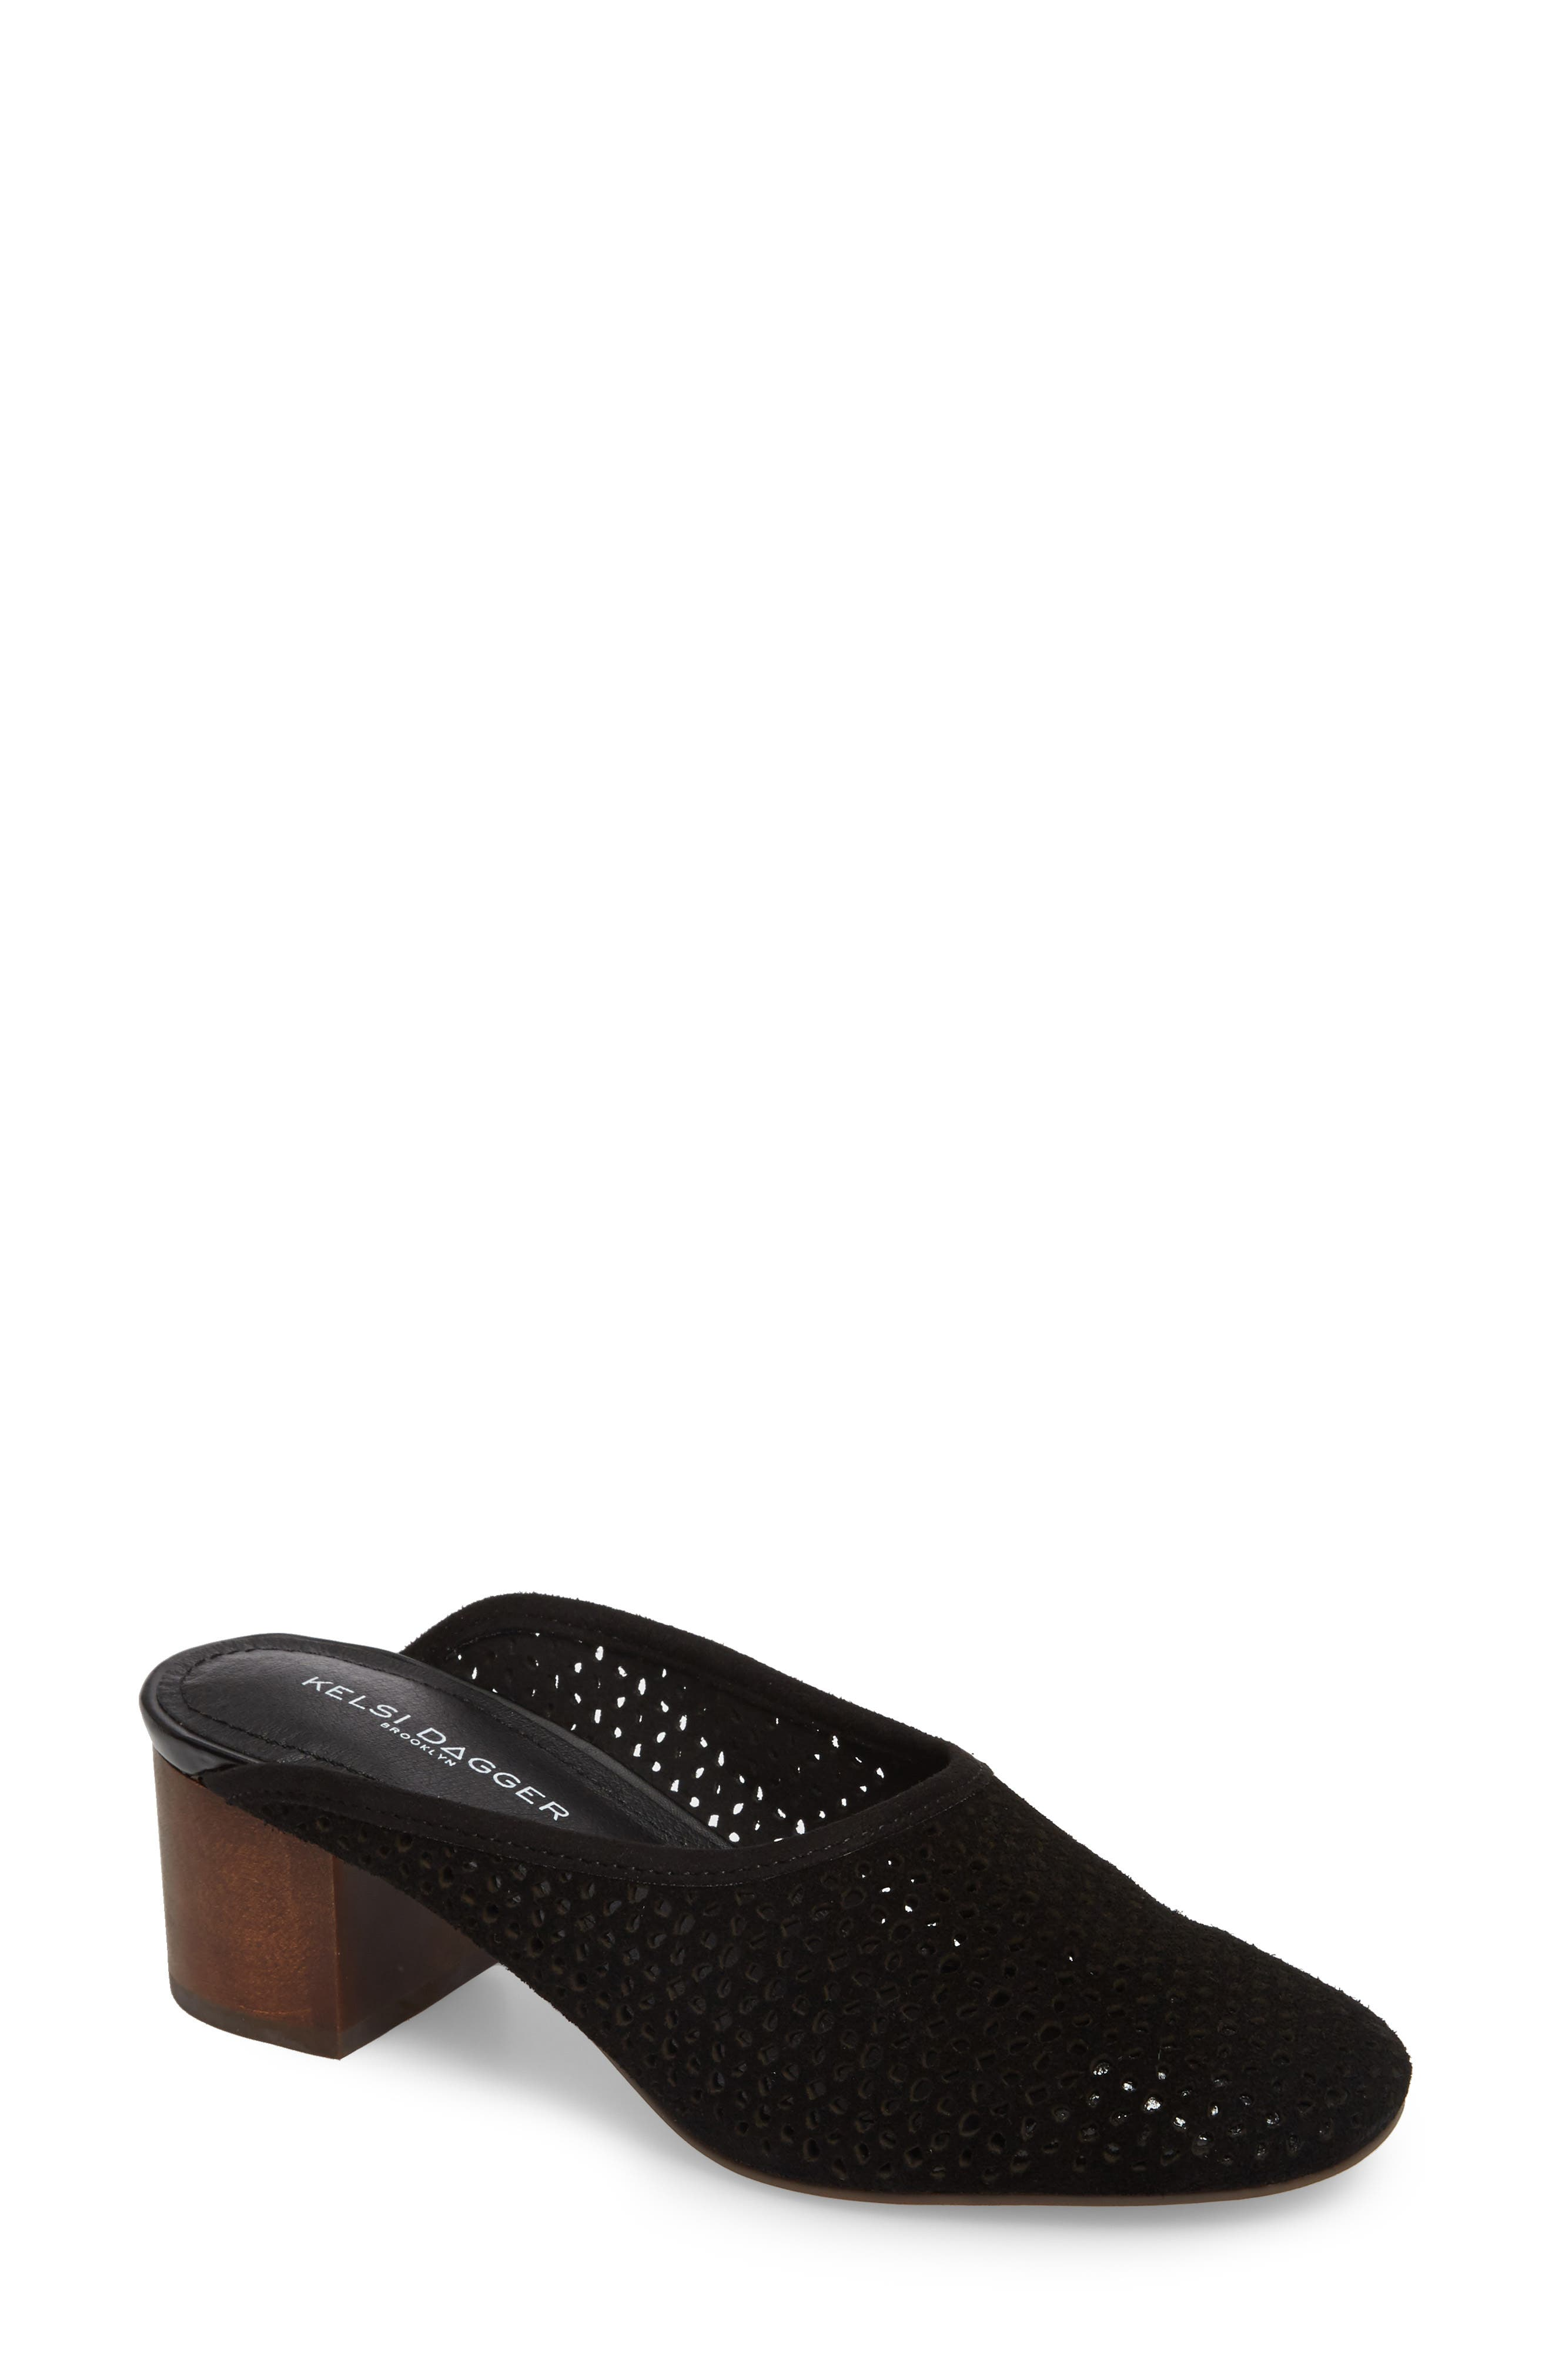 Lincoln Perforated Mule,                         Main,                         color, Black